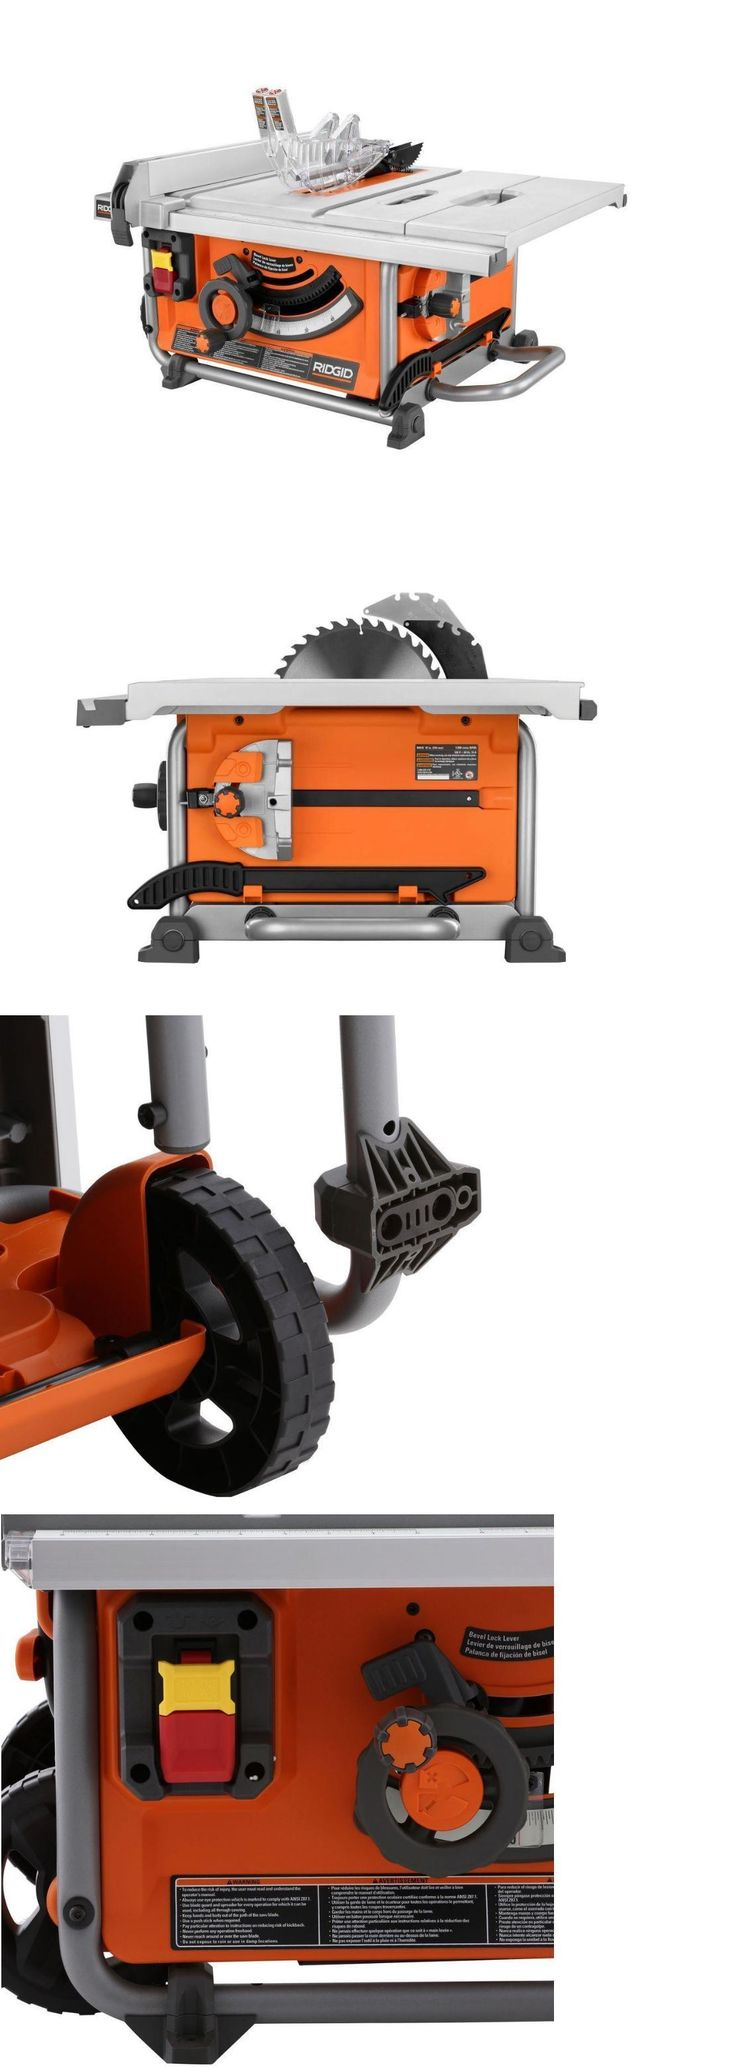 Table Saws 122835: 15 Amp 10 Ridgid Table Saw Compact Heavy-Duty Bench Blade Wheels Power Tool New -> BUY IT NOW ONLY: $319.99 on eBay!